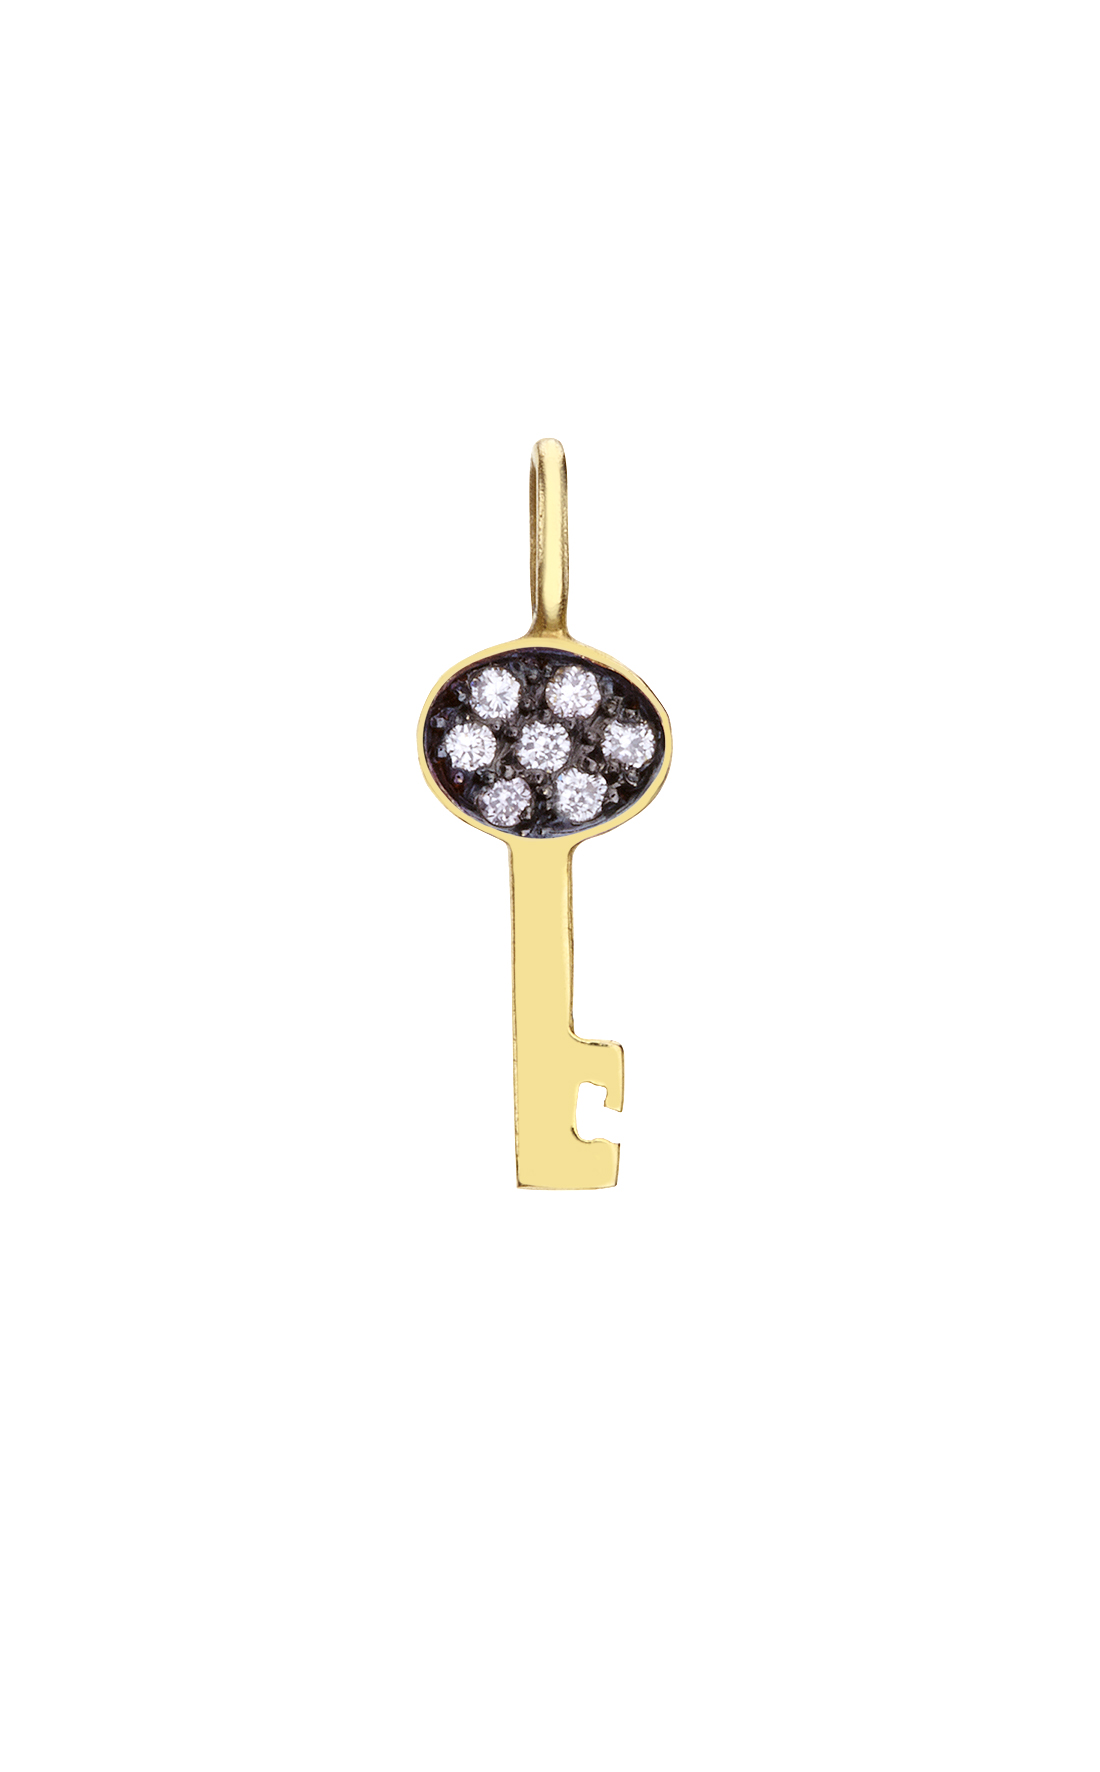 M023 - Lucky Key Diamond Pendant